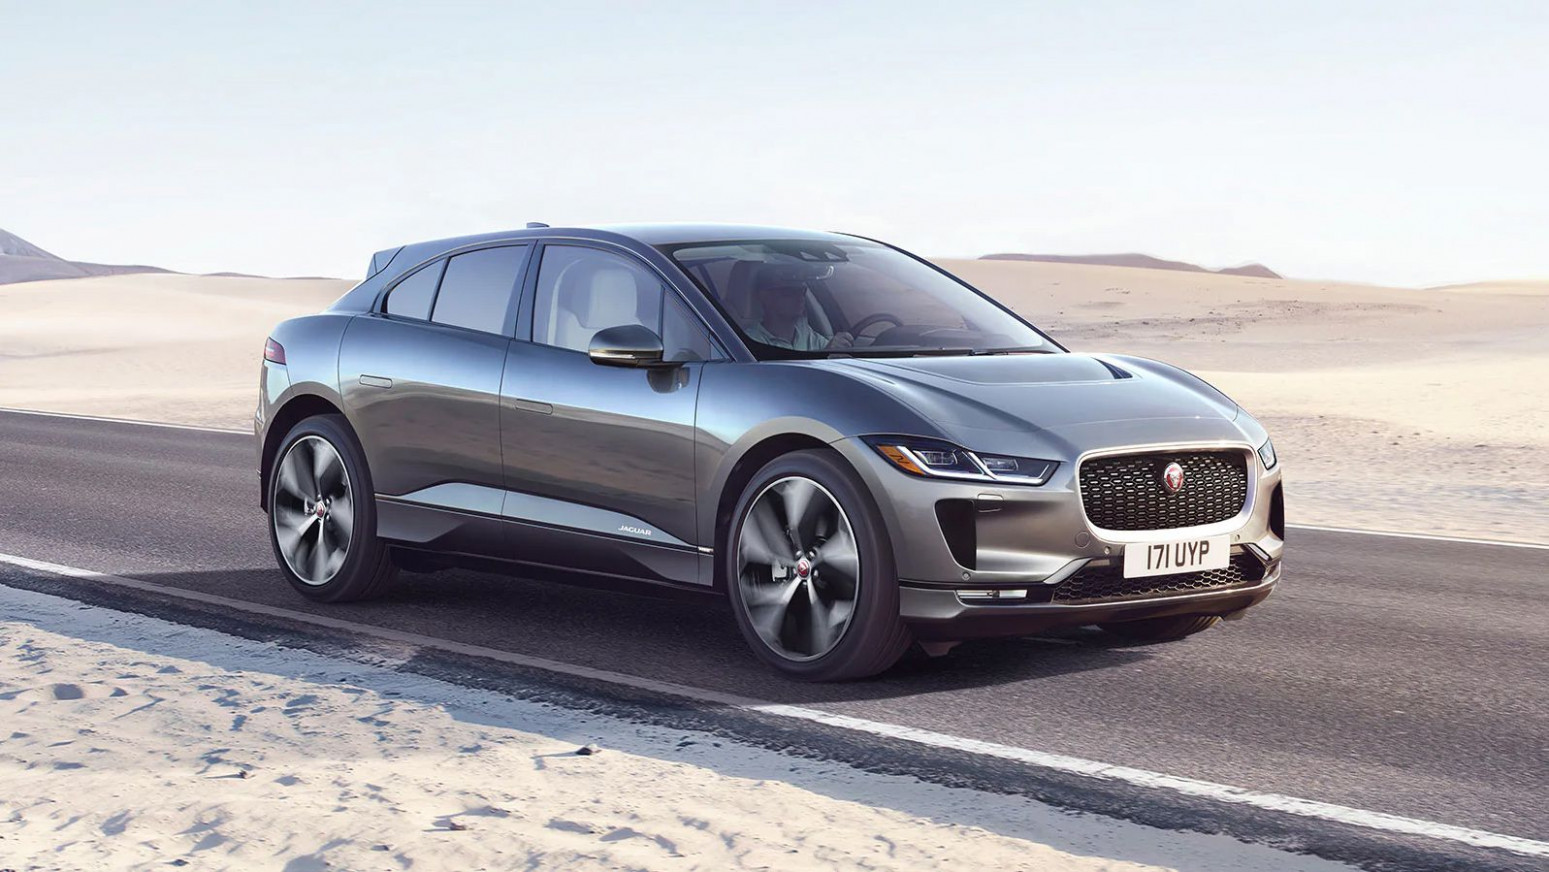 9 Jaguar I-Pace Review, Pricing, and Specs - jaguar i-pace electric cars 2020